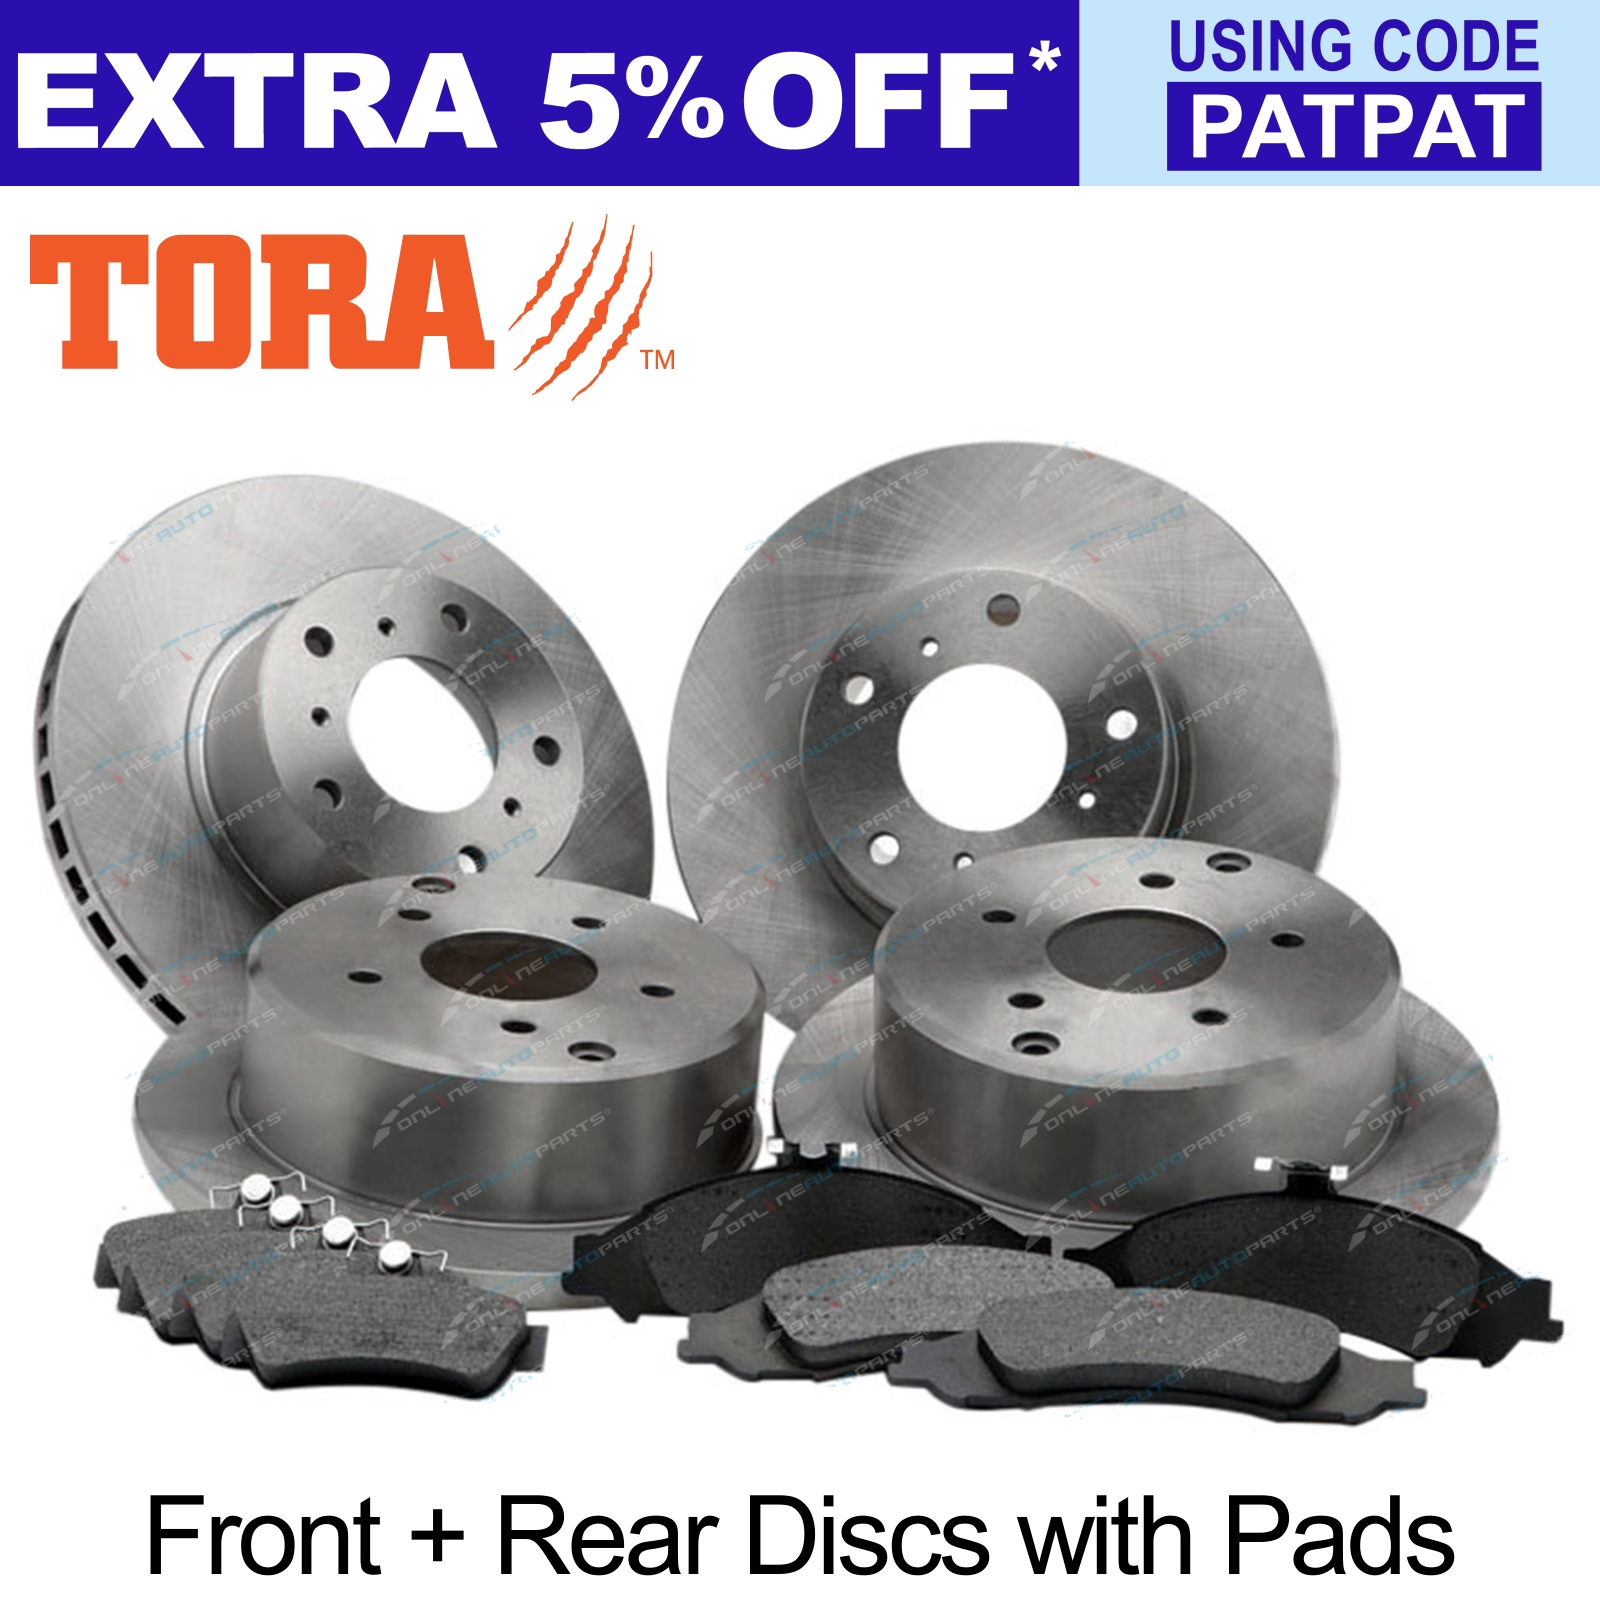 4-Front-Rear-Disc-Rotors-Brake-Pads-Pack-Commodore-VT-VX-VY-VZ-1997-2007-Holden